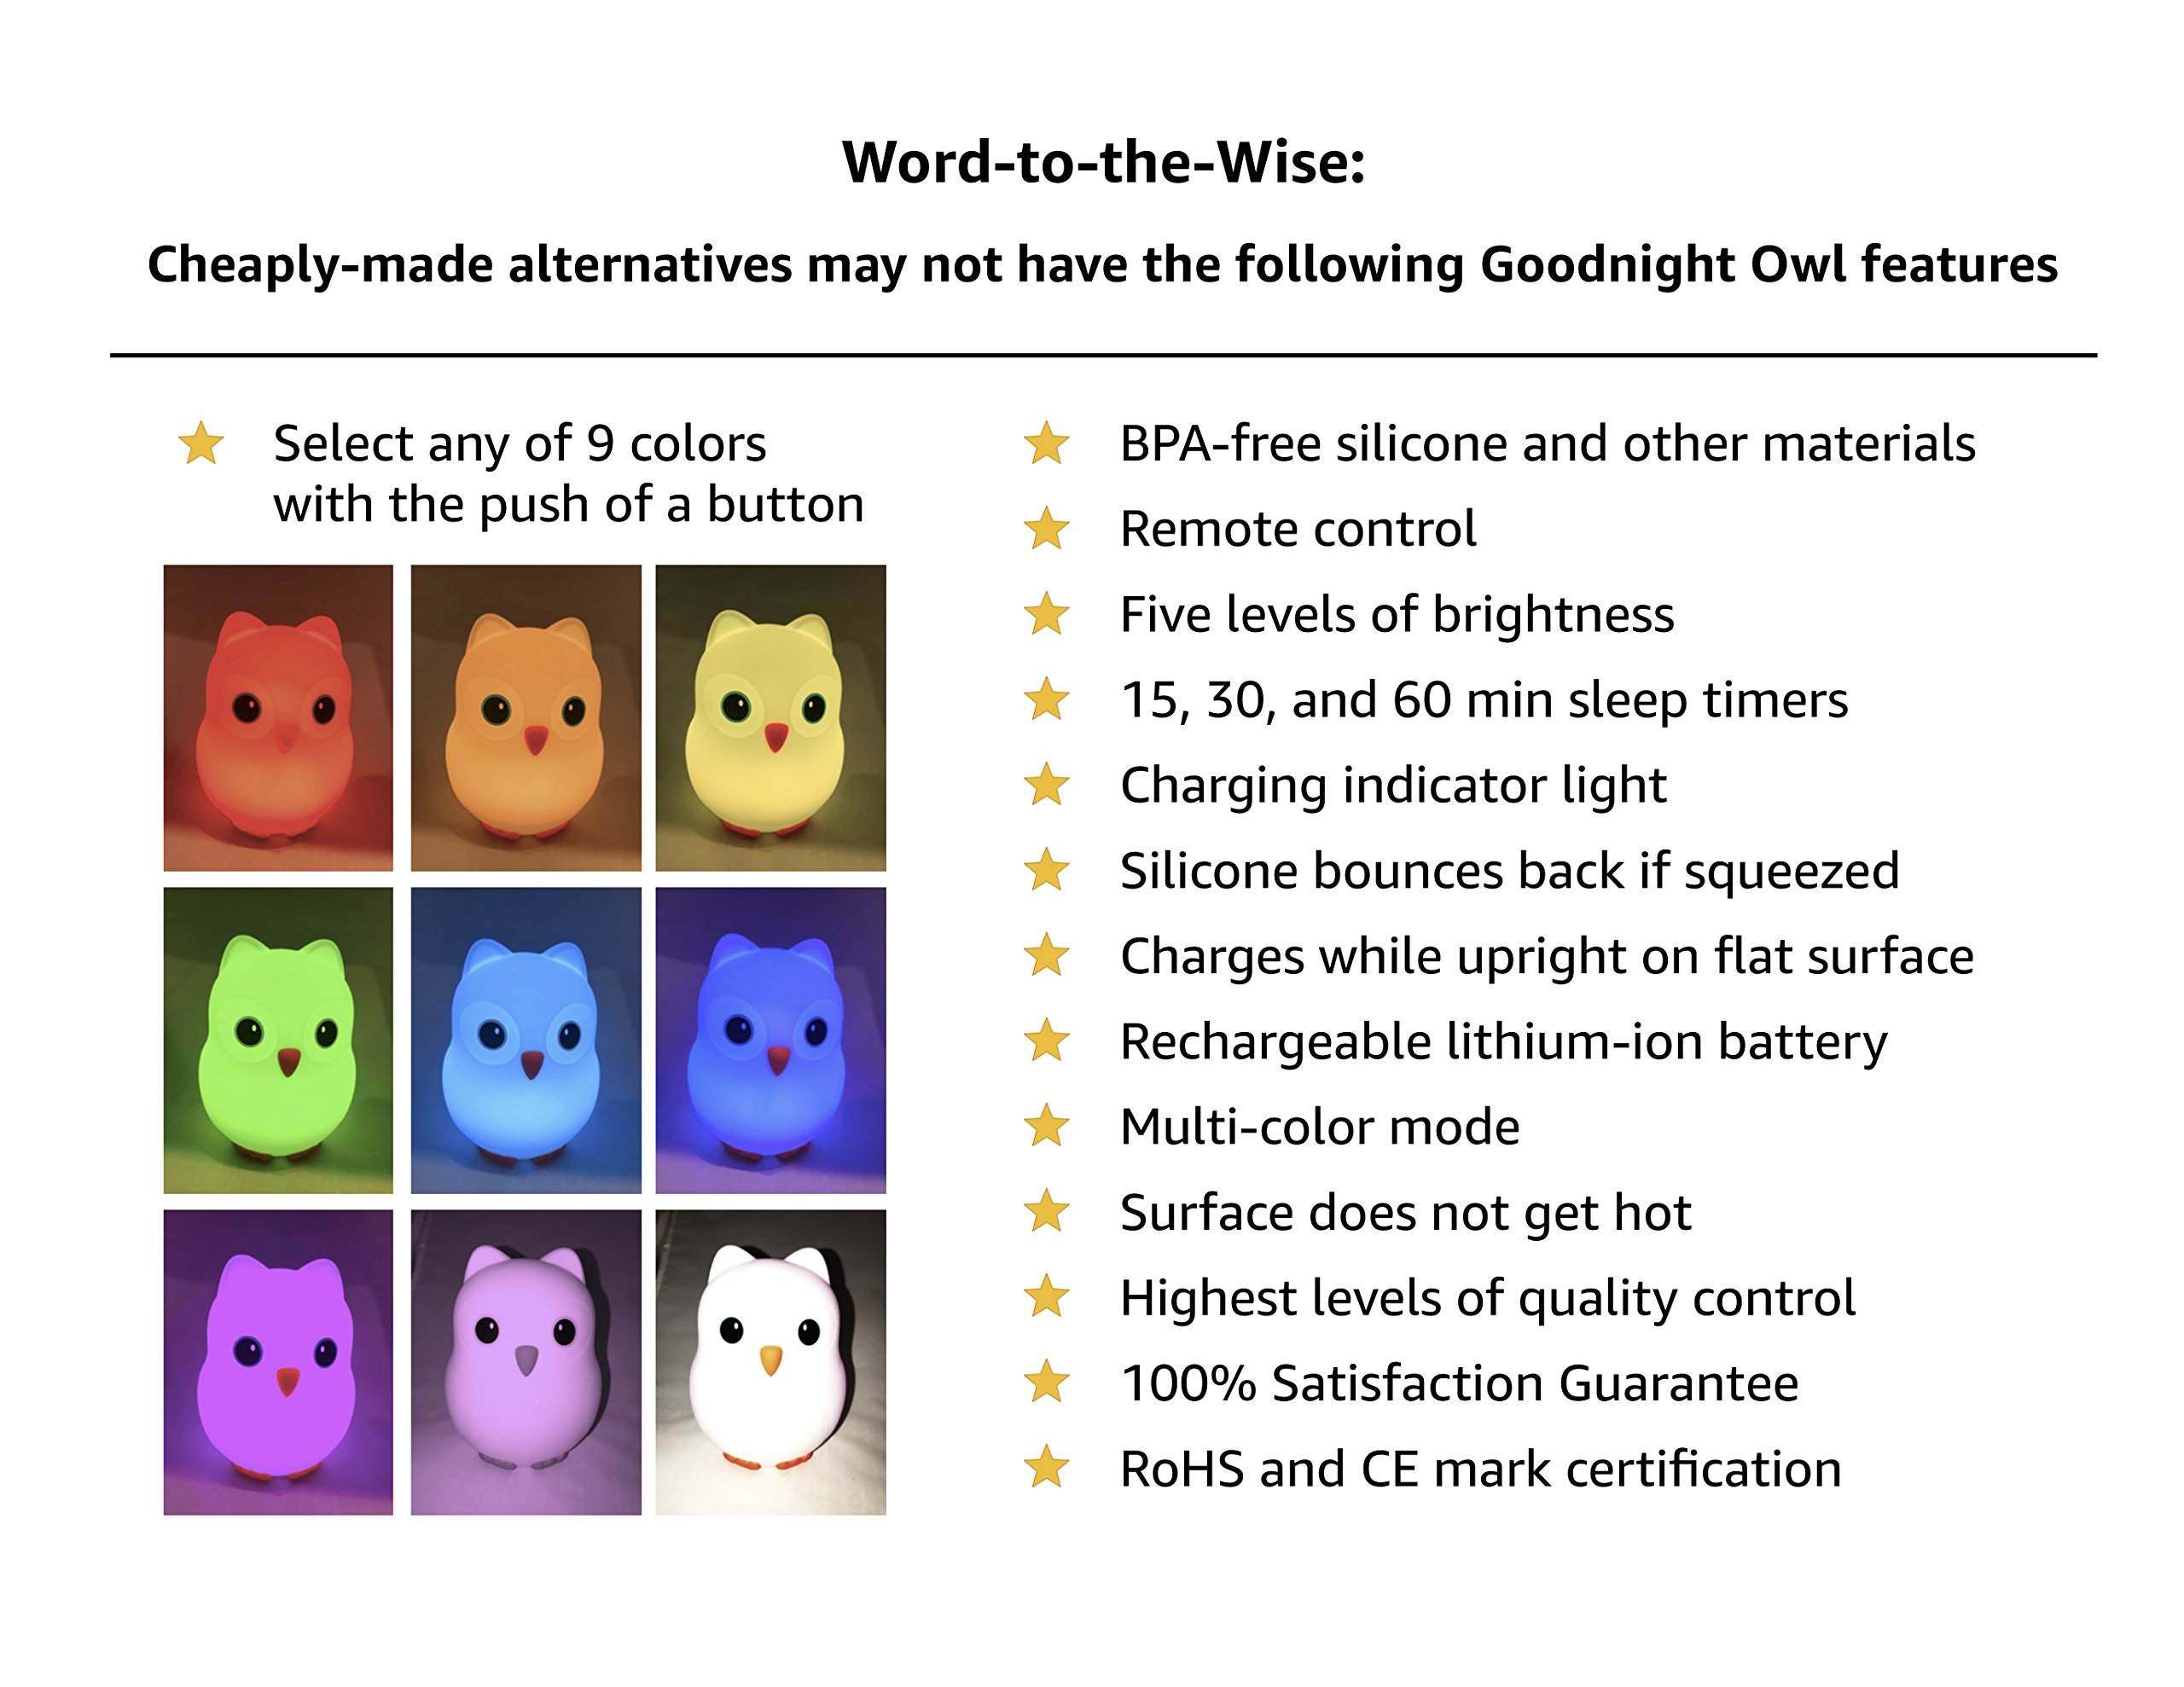 Goodnight Owl Jr. Night Light Kids & Toddlers - Multi-Color LEDs (9 Colors!), BPA-Free Silicone, Rechargeable Battery, 5 Levels Brightness, auto-Off Timer + Remote Control. Super Cute Fun!